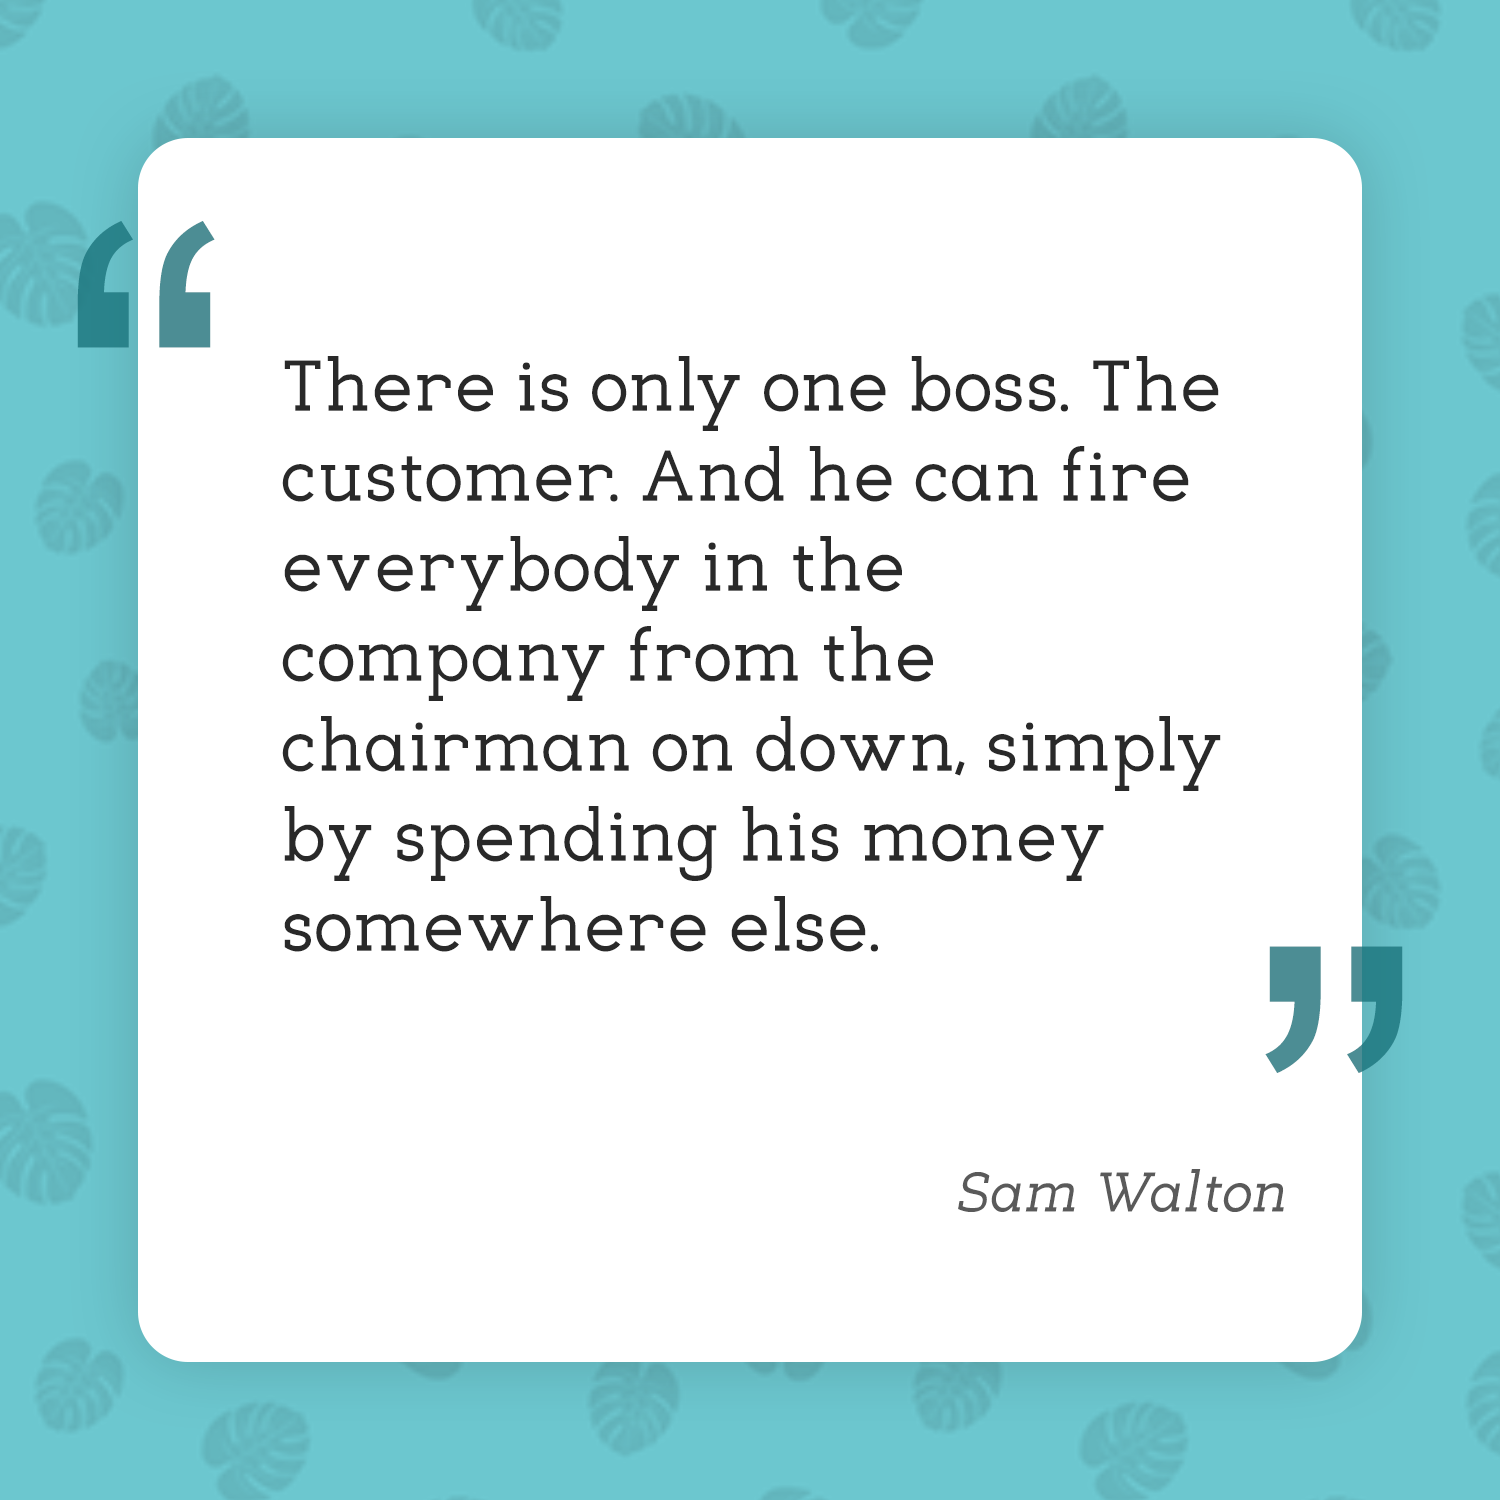 Customer satisfaction shouldn't just be... Inventory